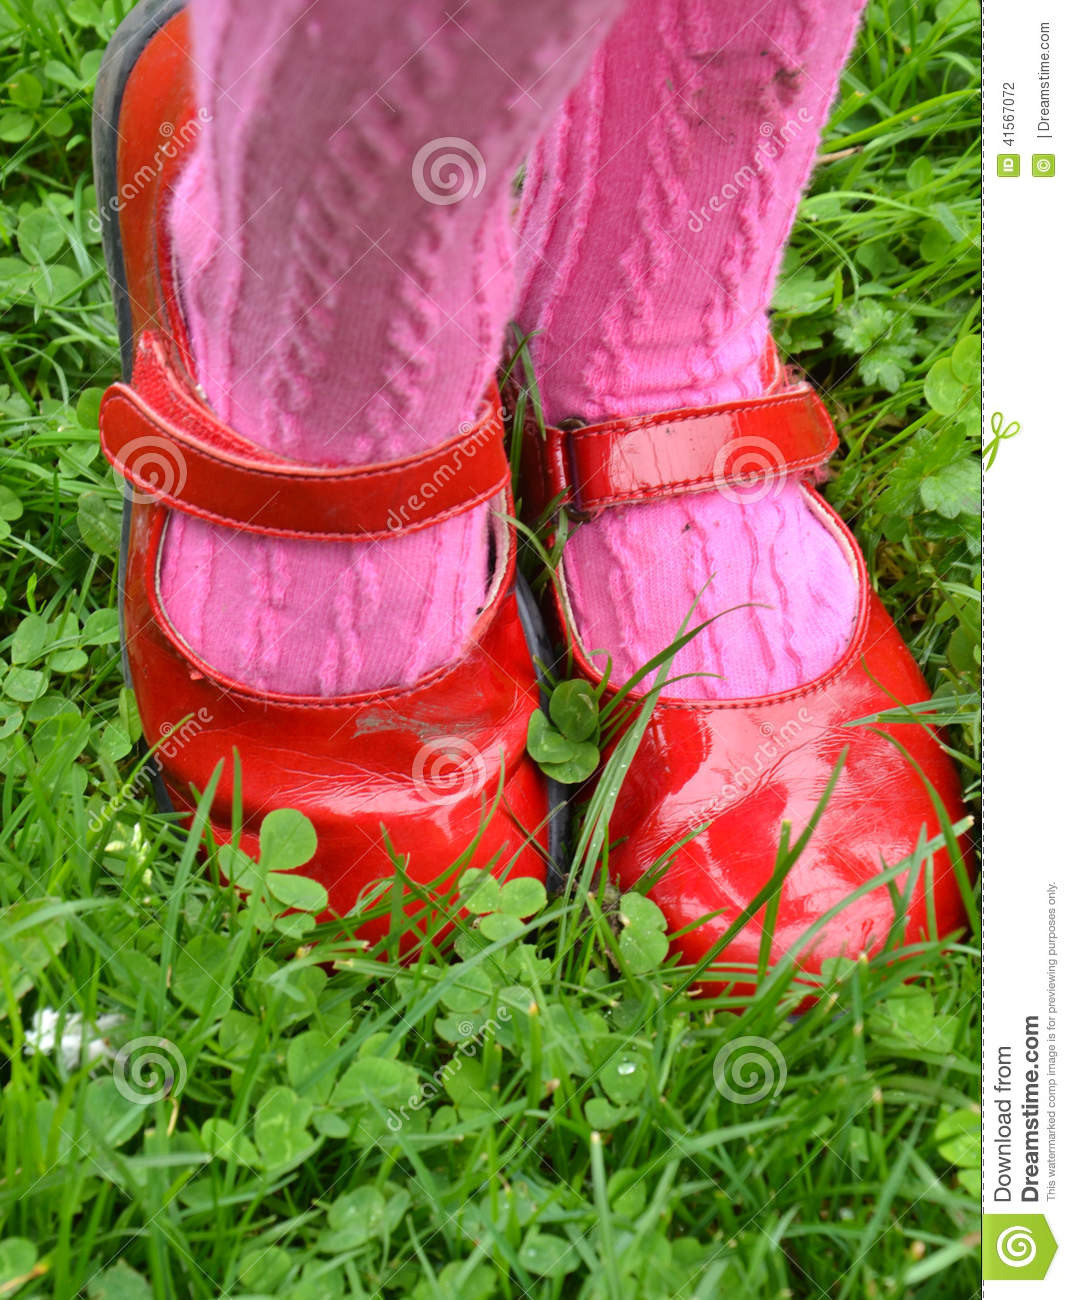 newest 4452f 2bece Little girl s red shoes